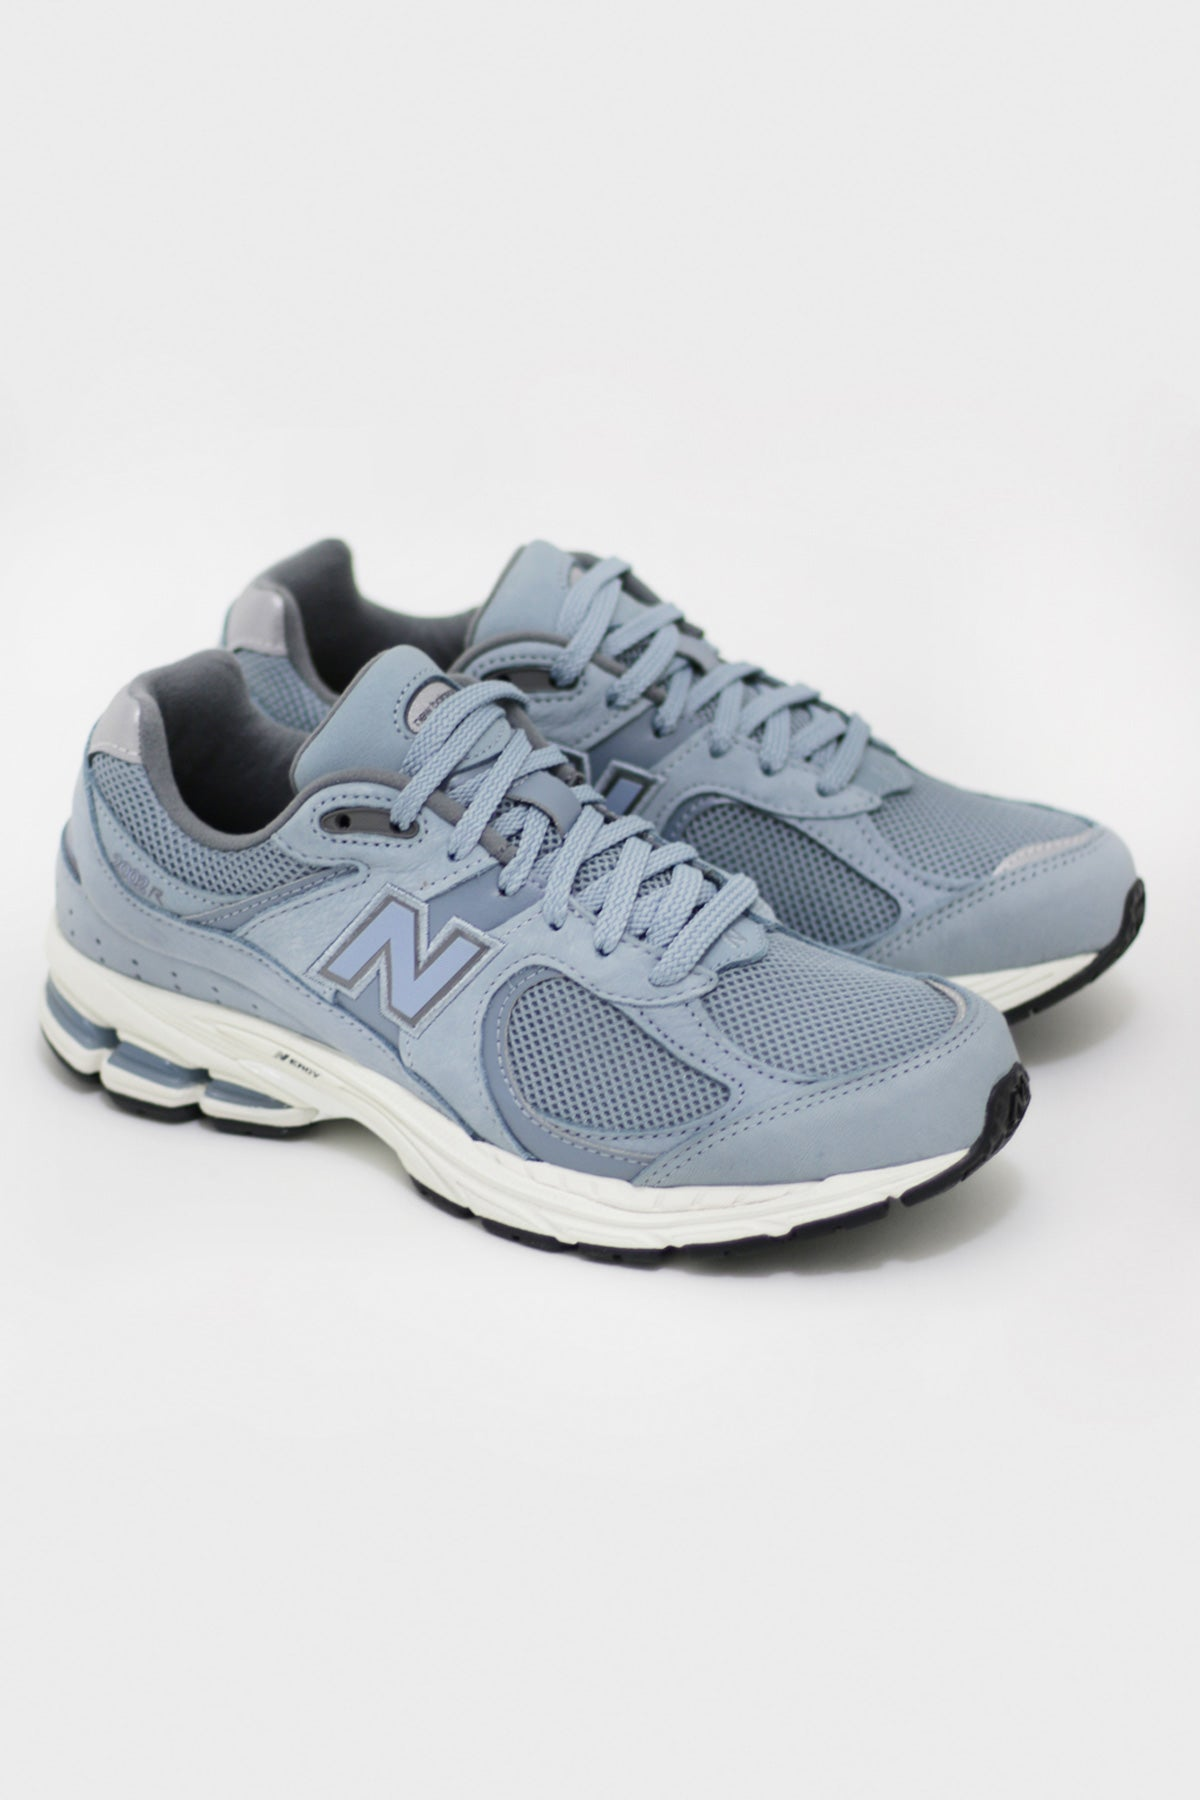 New Balance - 2002 R - Raincloud/Carnival - Canoe Club